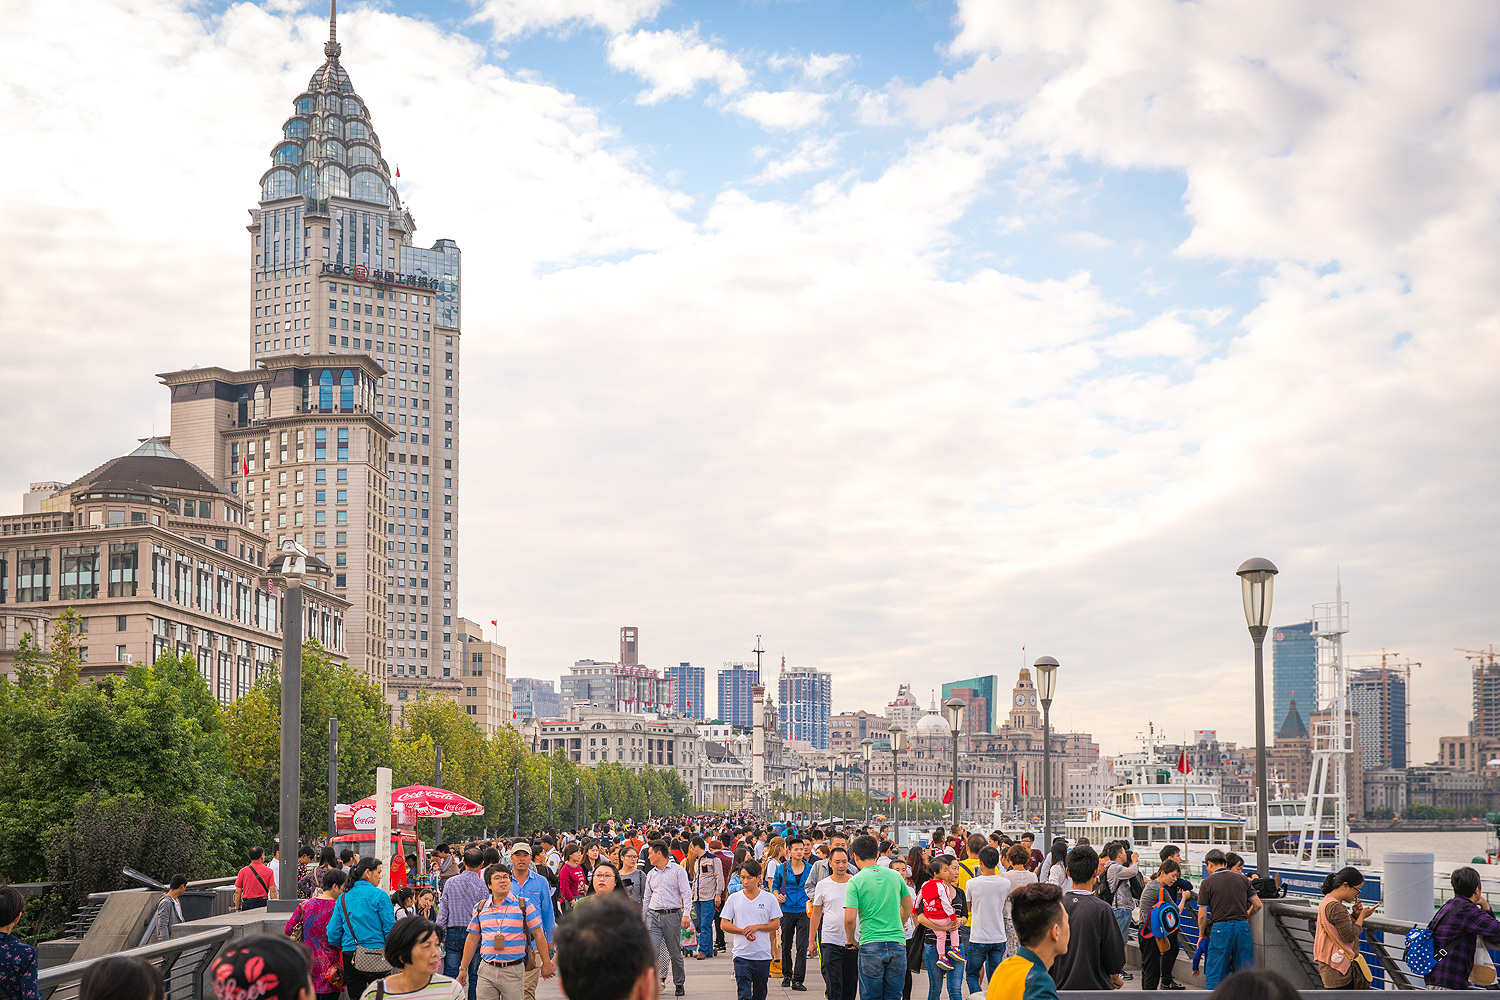 Shanghai China Reiseblog: The Bund Promenade © PhotoTravelNomads.com